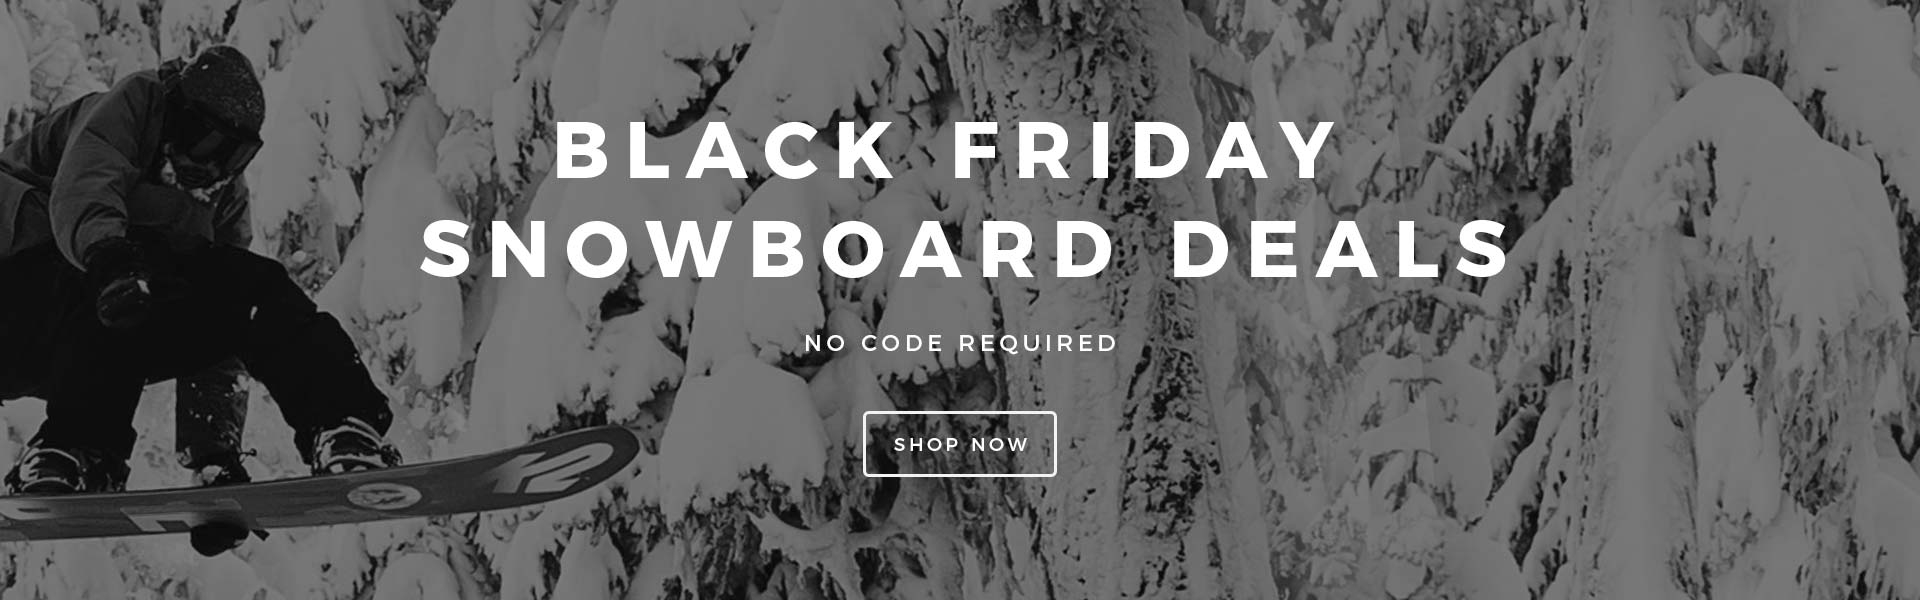 Black Friday Snowboard Deals